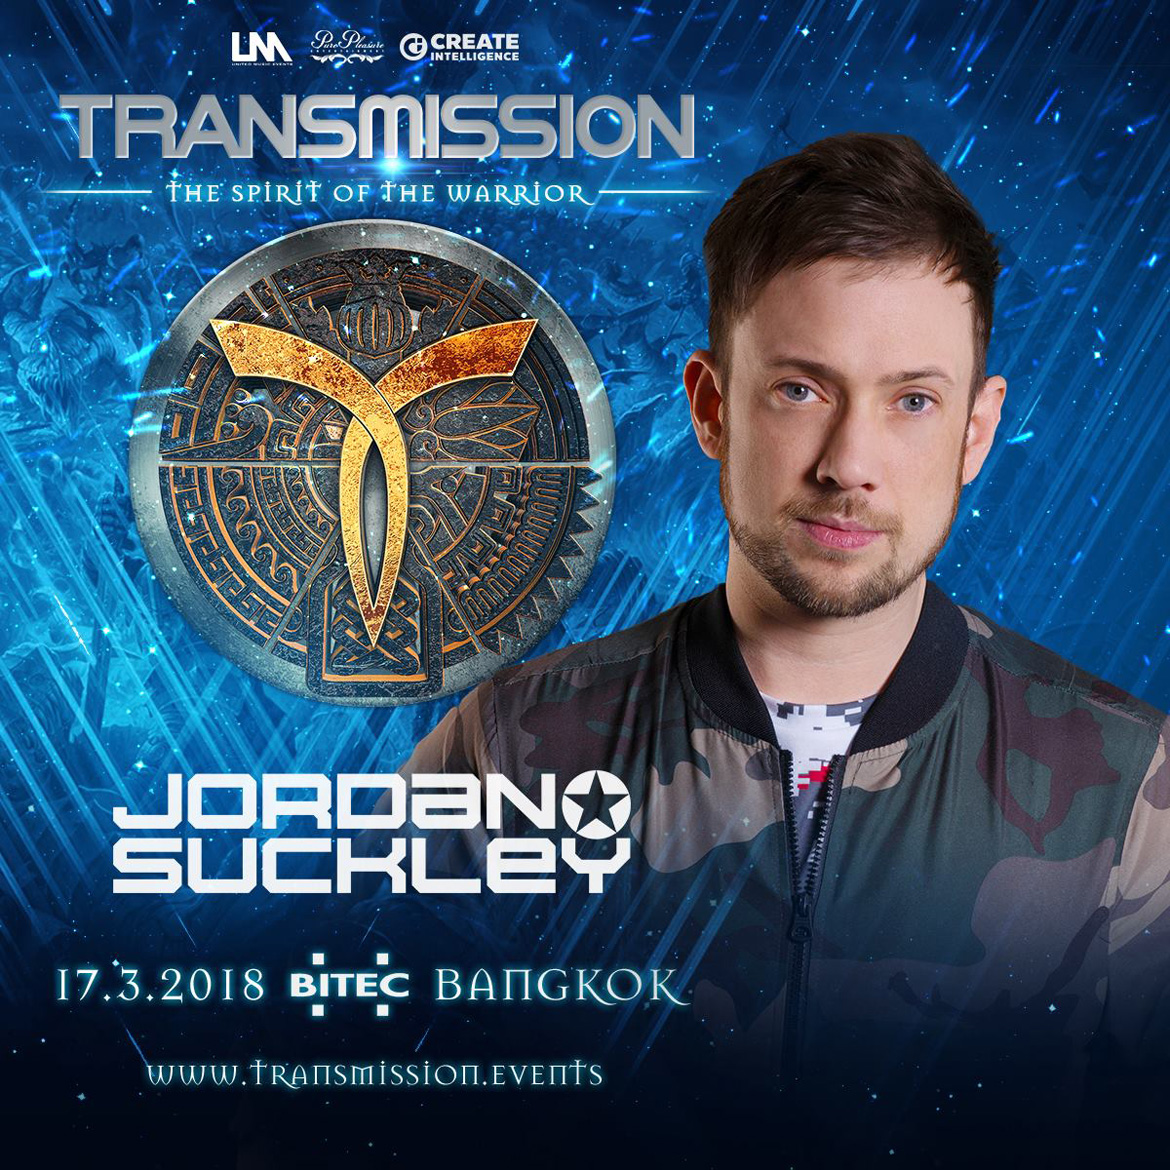 Jordan Suckley @ Transmission 2018 Lineup